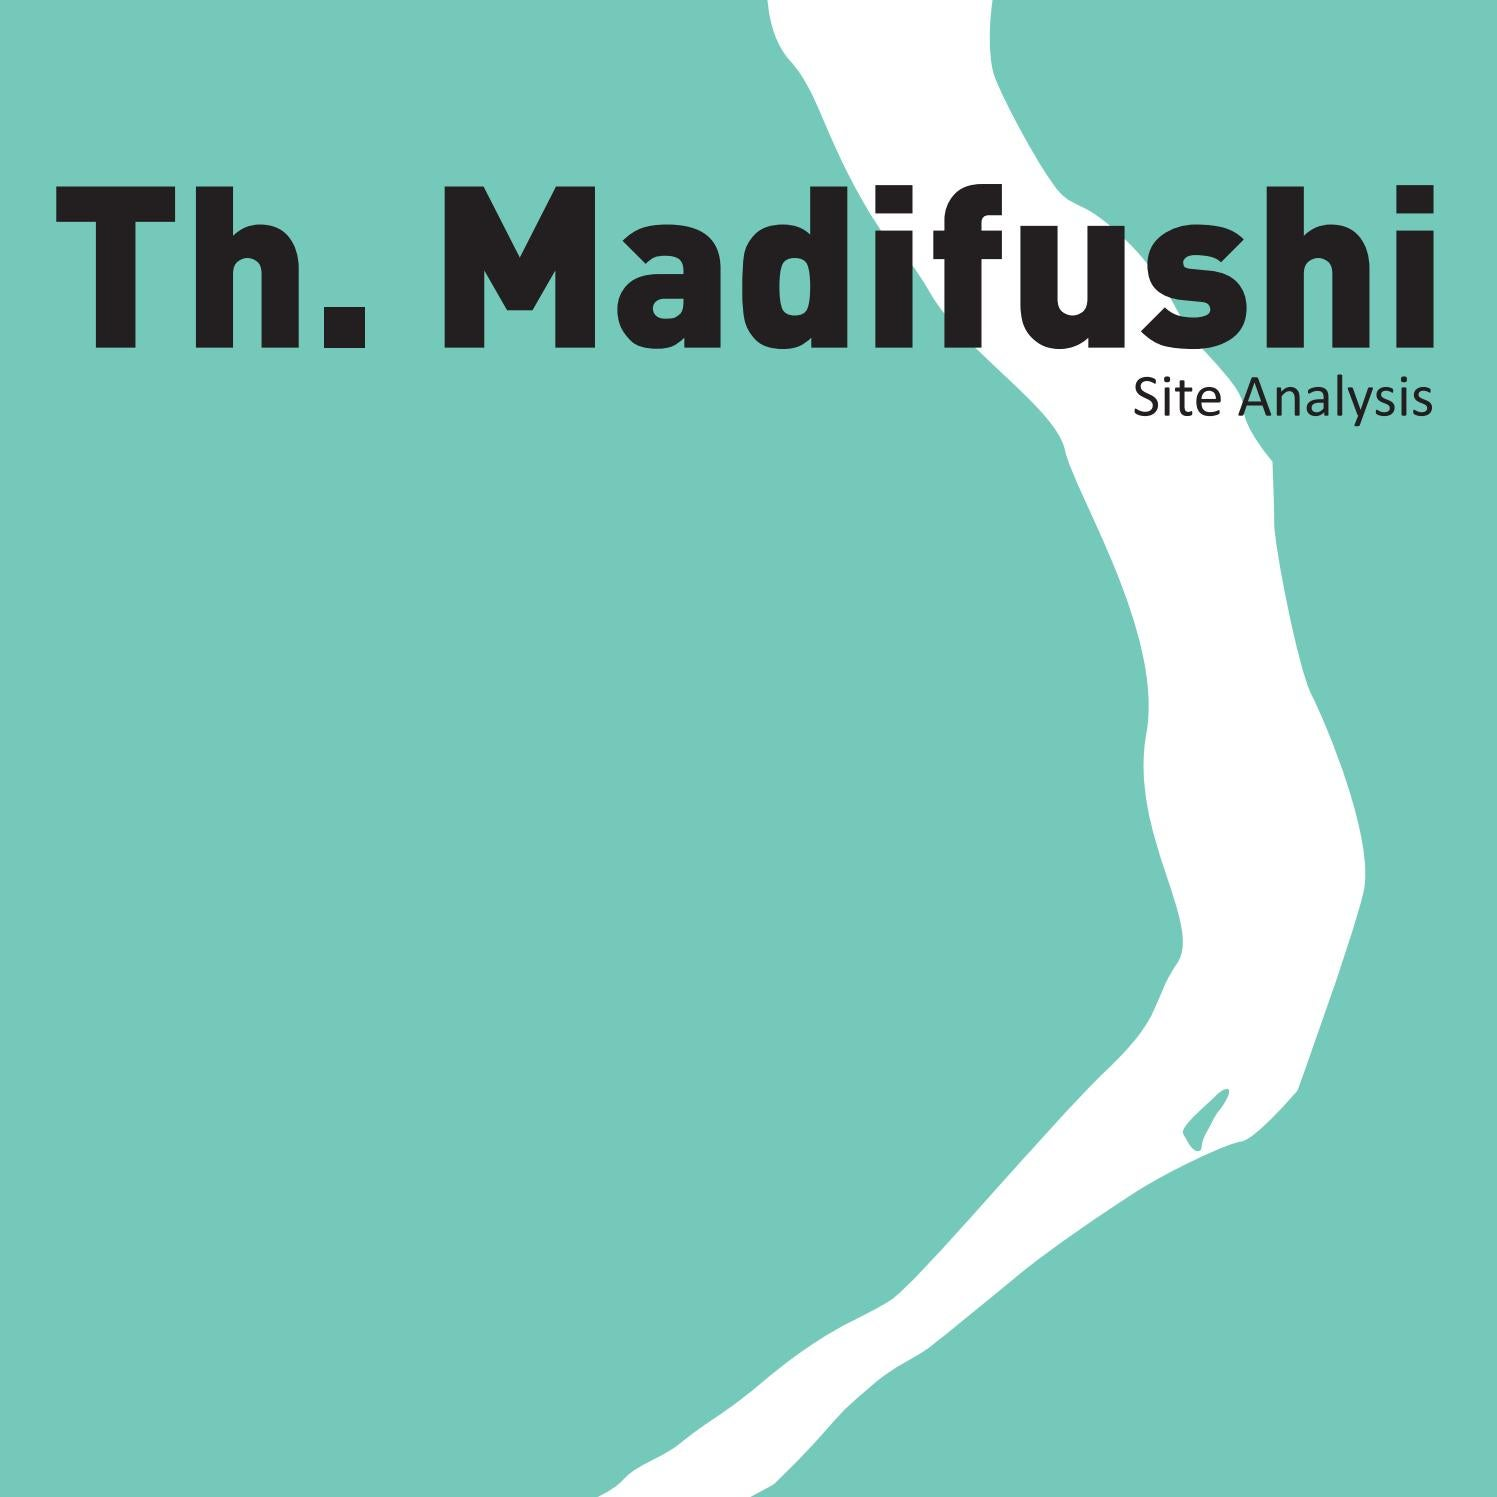 Th. Madifushi Site Analysis By Faculty Of Engineering